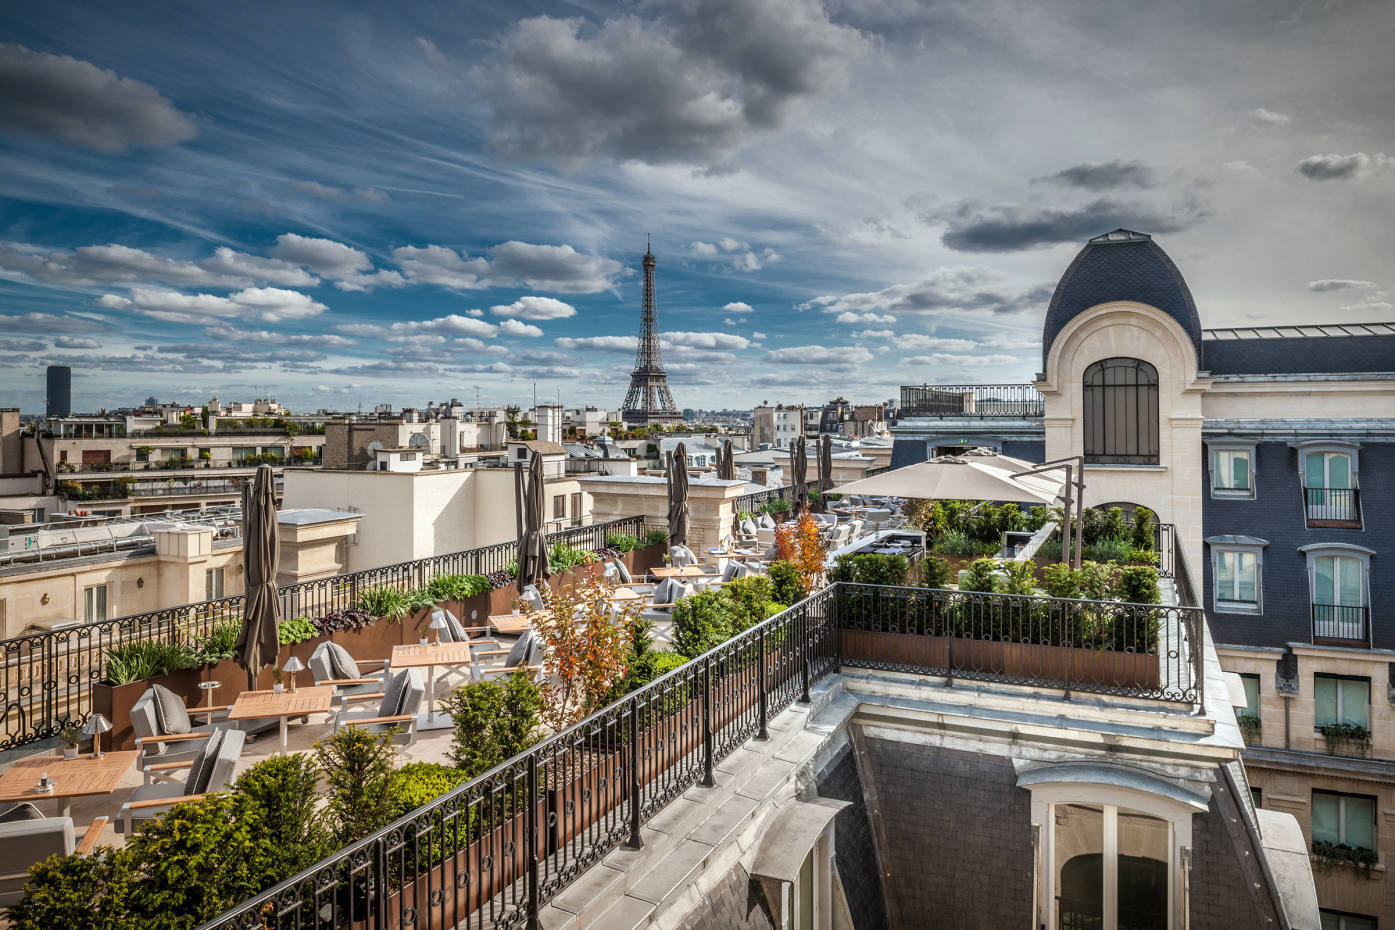 L'Oiseau Blanc, the rooftop restaurant at The Peninsula Paris, with200-degree views of the city